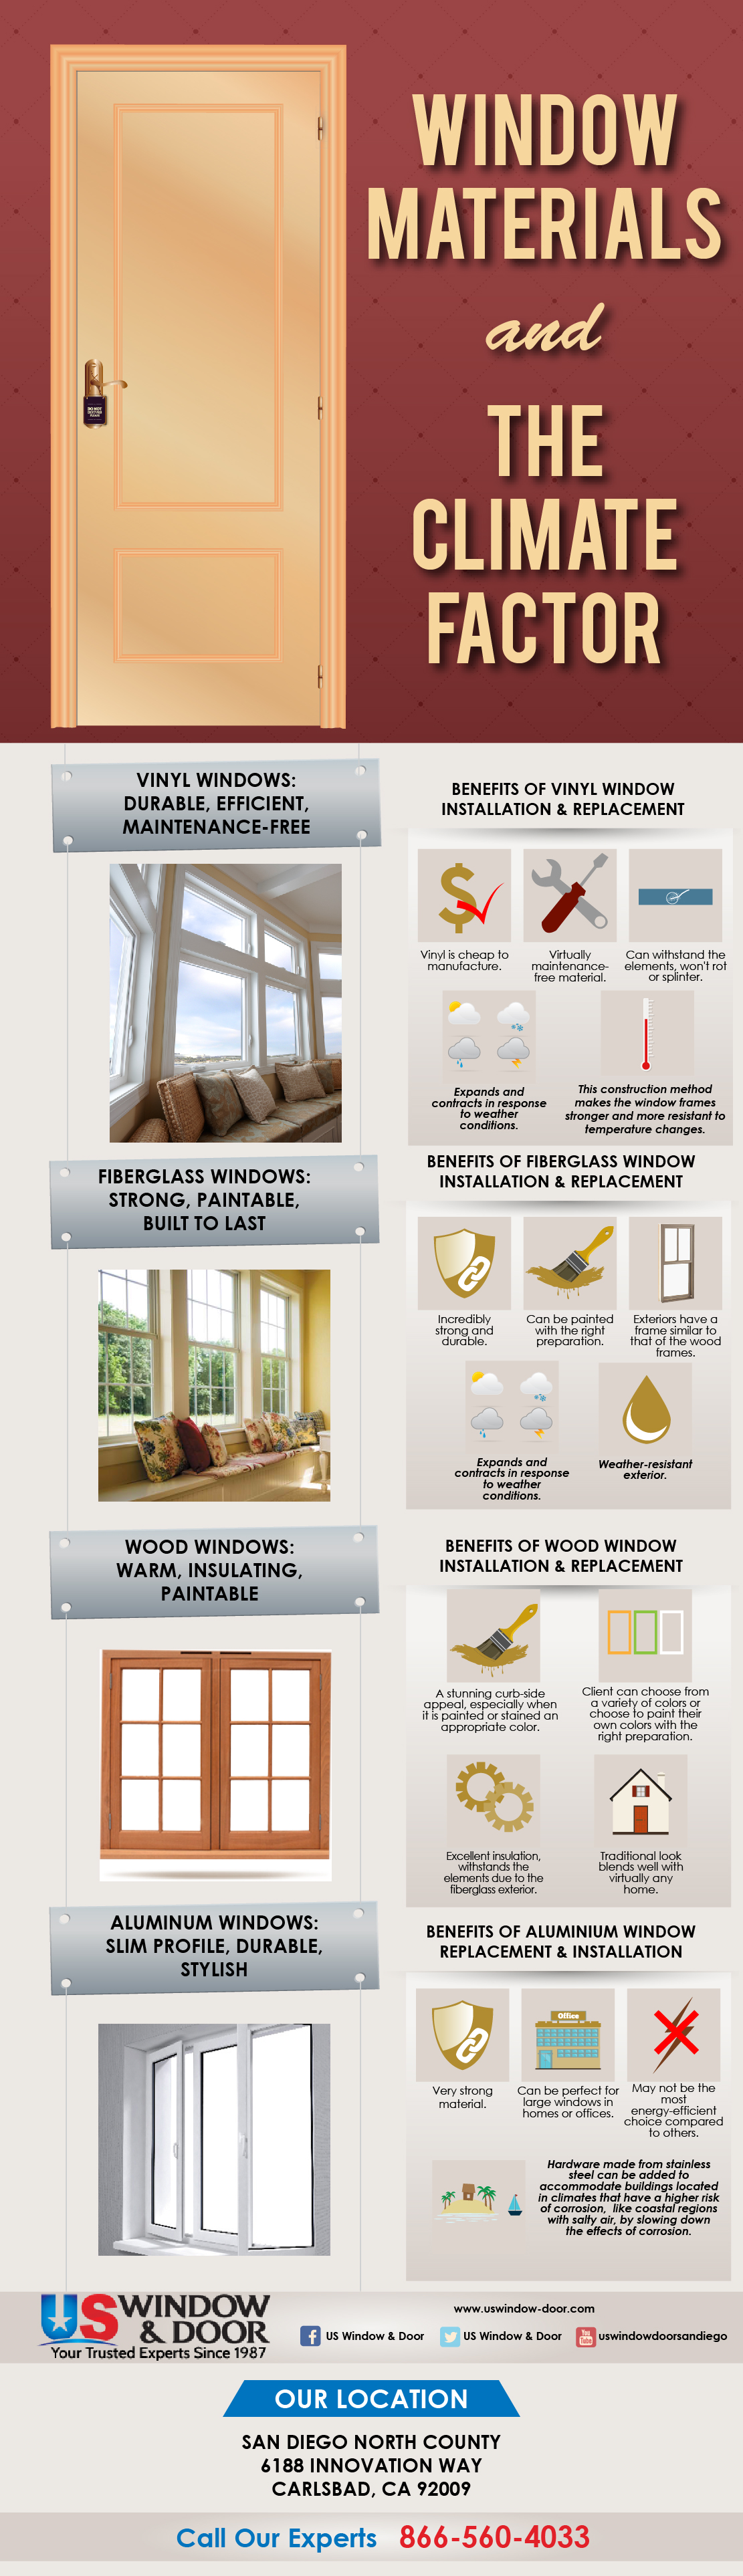 Window Materials and the Climate Factor